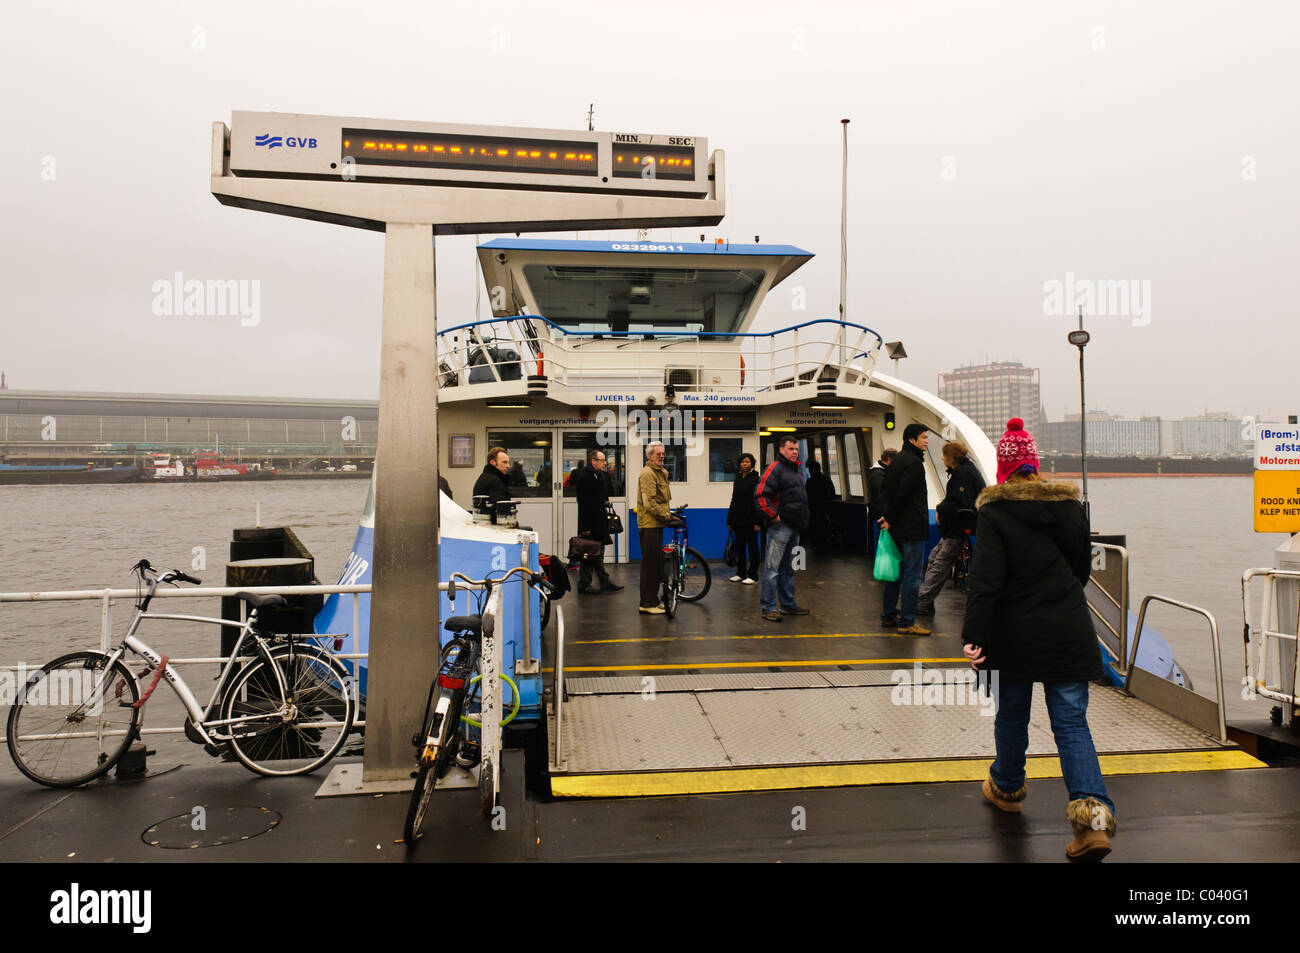 Passengers boarding the GVB passenger and bike ferry crossing the Het Ij, Amsterdam in poor weather with low visibility - Stock Image